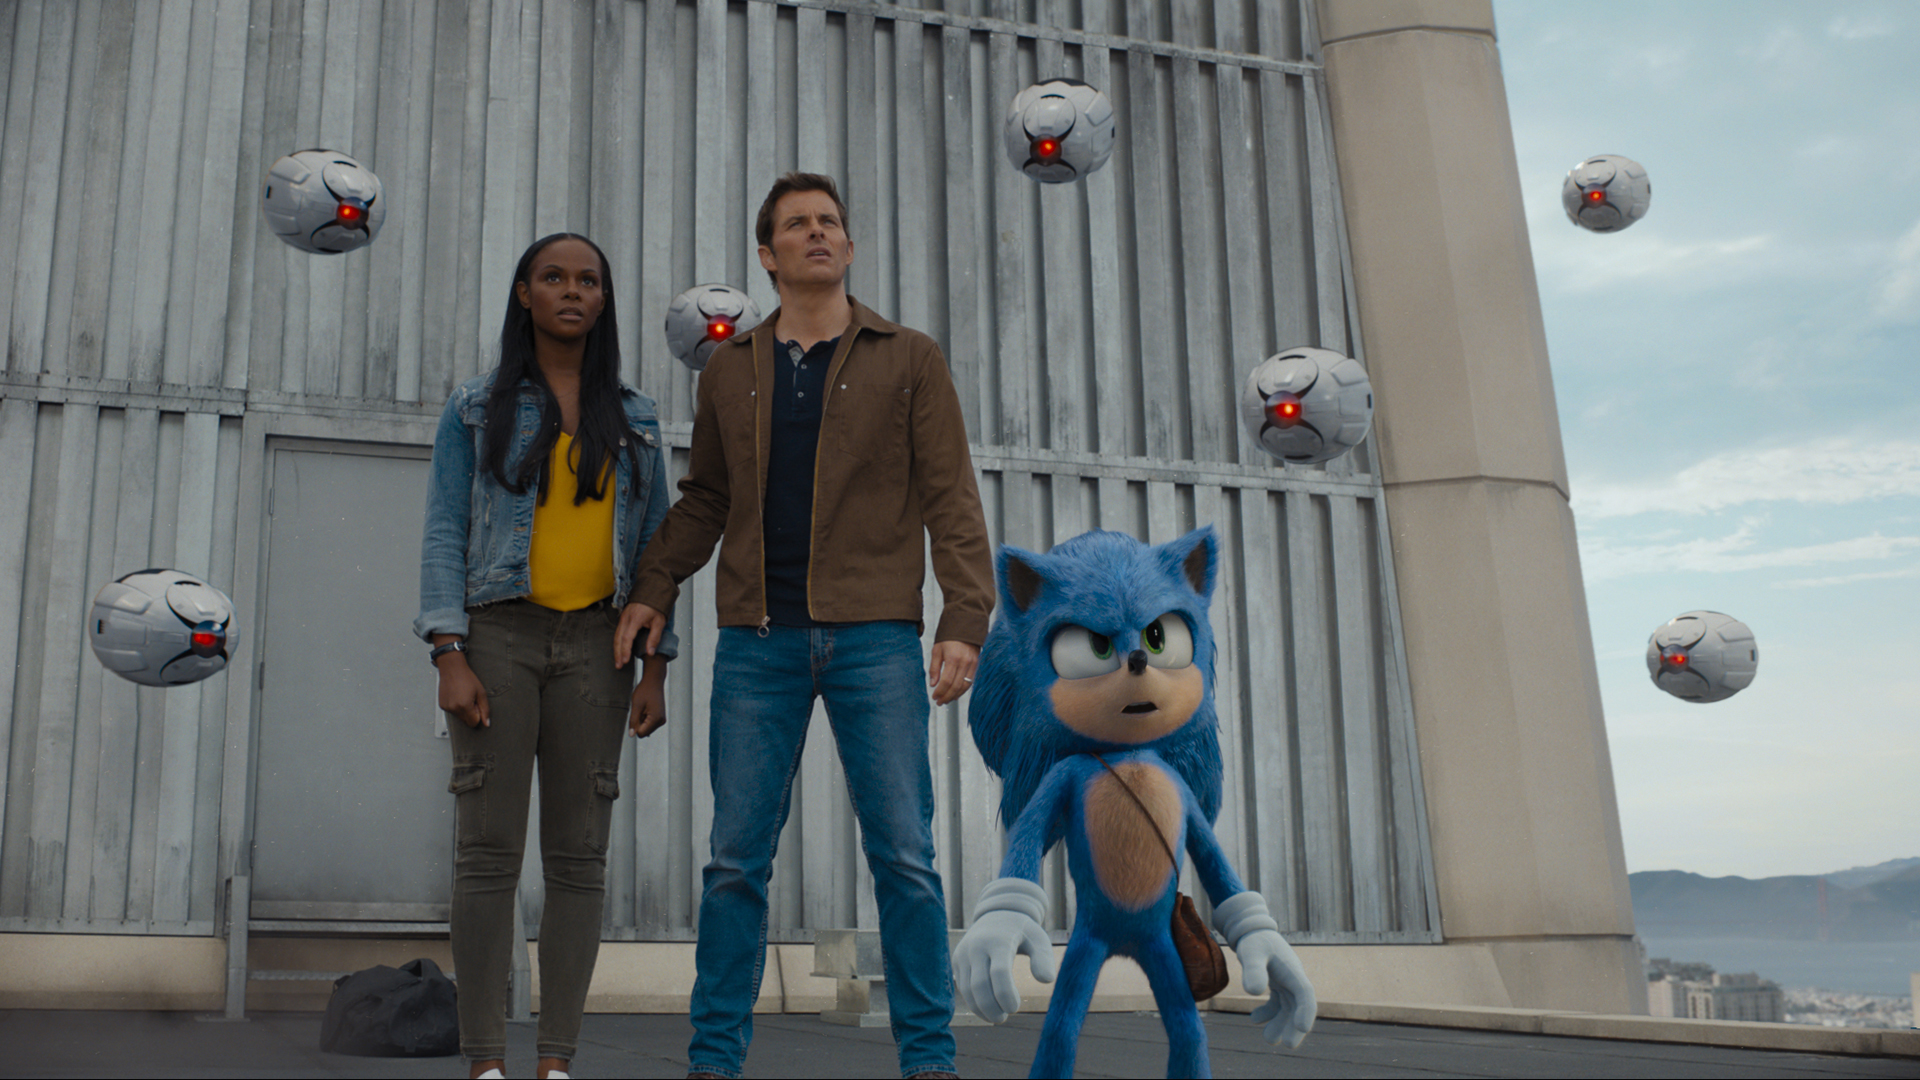 All The Sega References And Easter Eggs We Spotted In The Sonic The Hedgehog Movie Usgamer